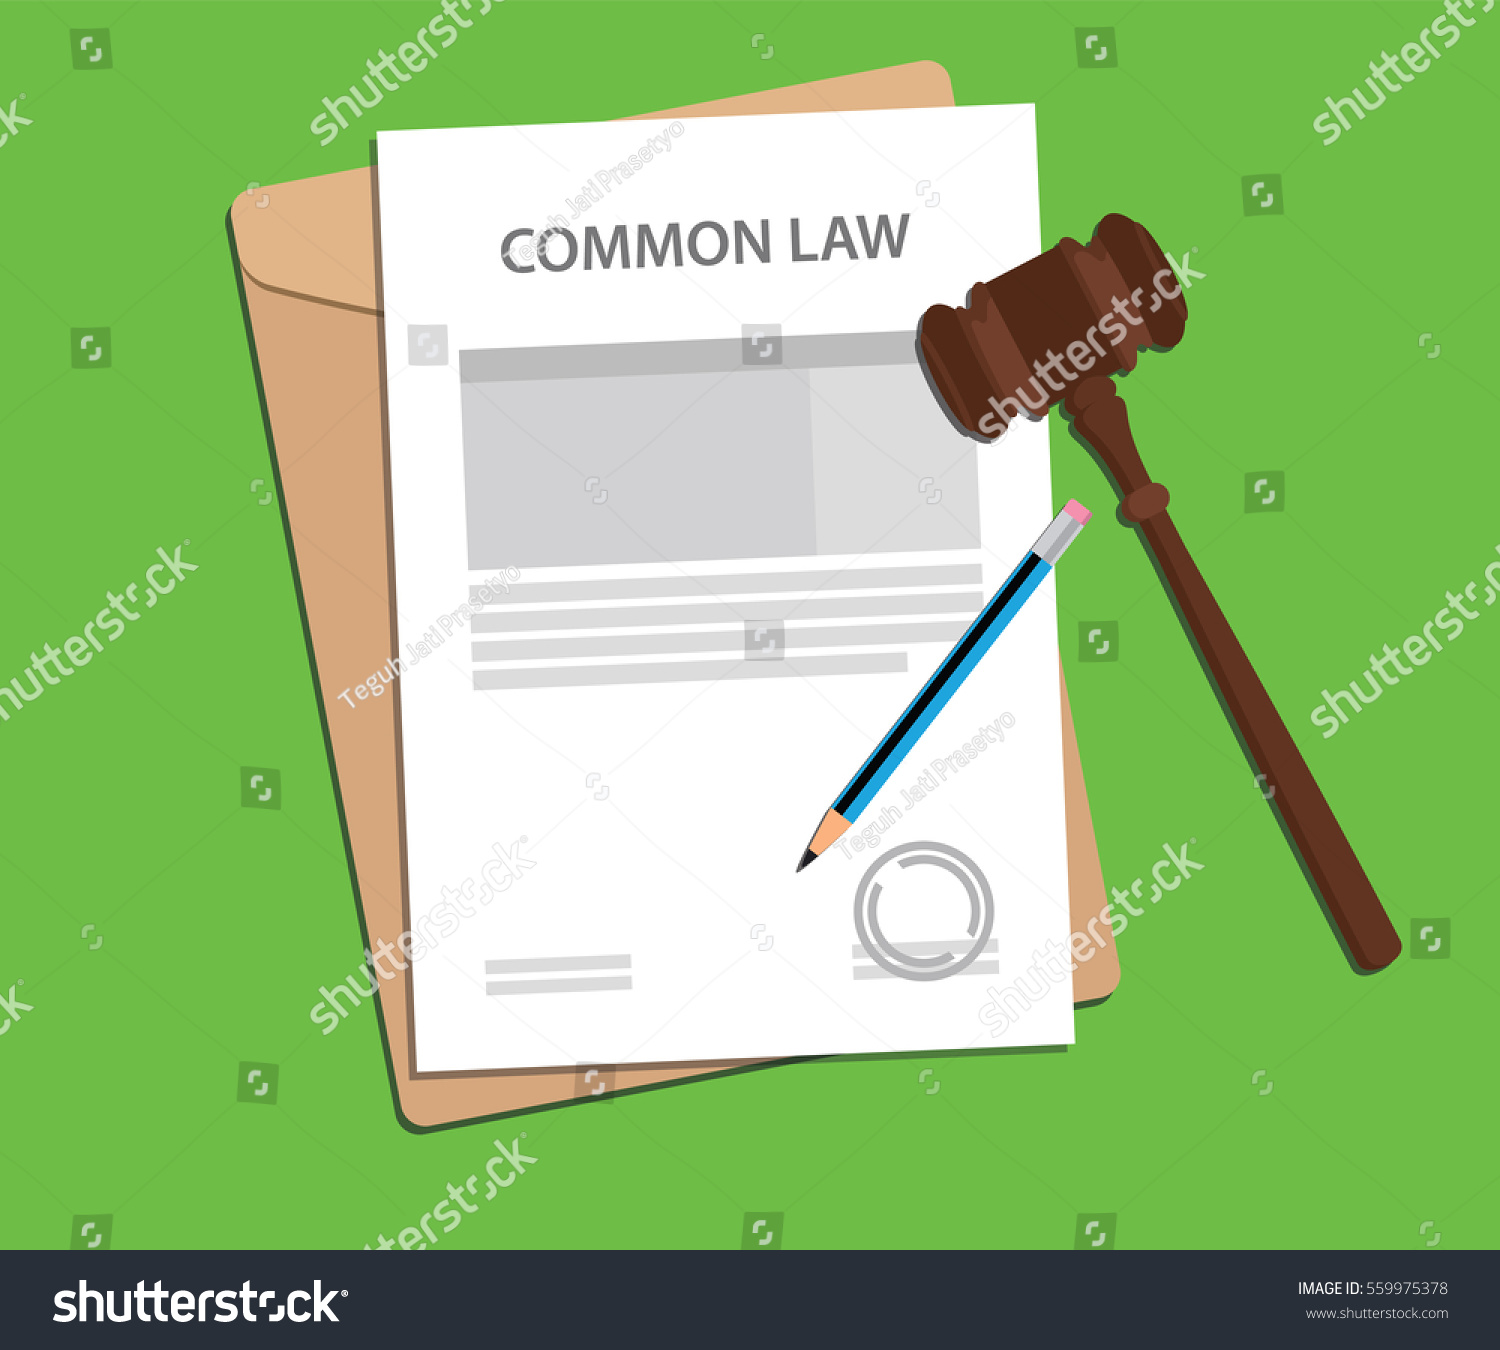 common law inland how to send photos